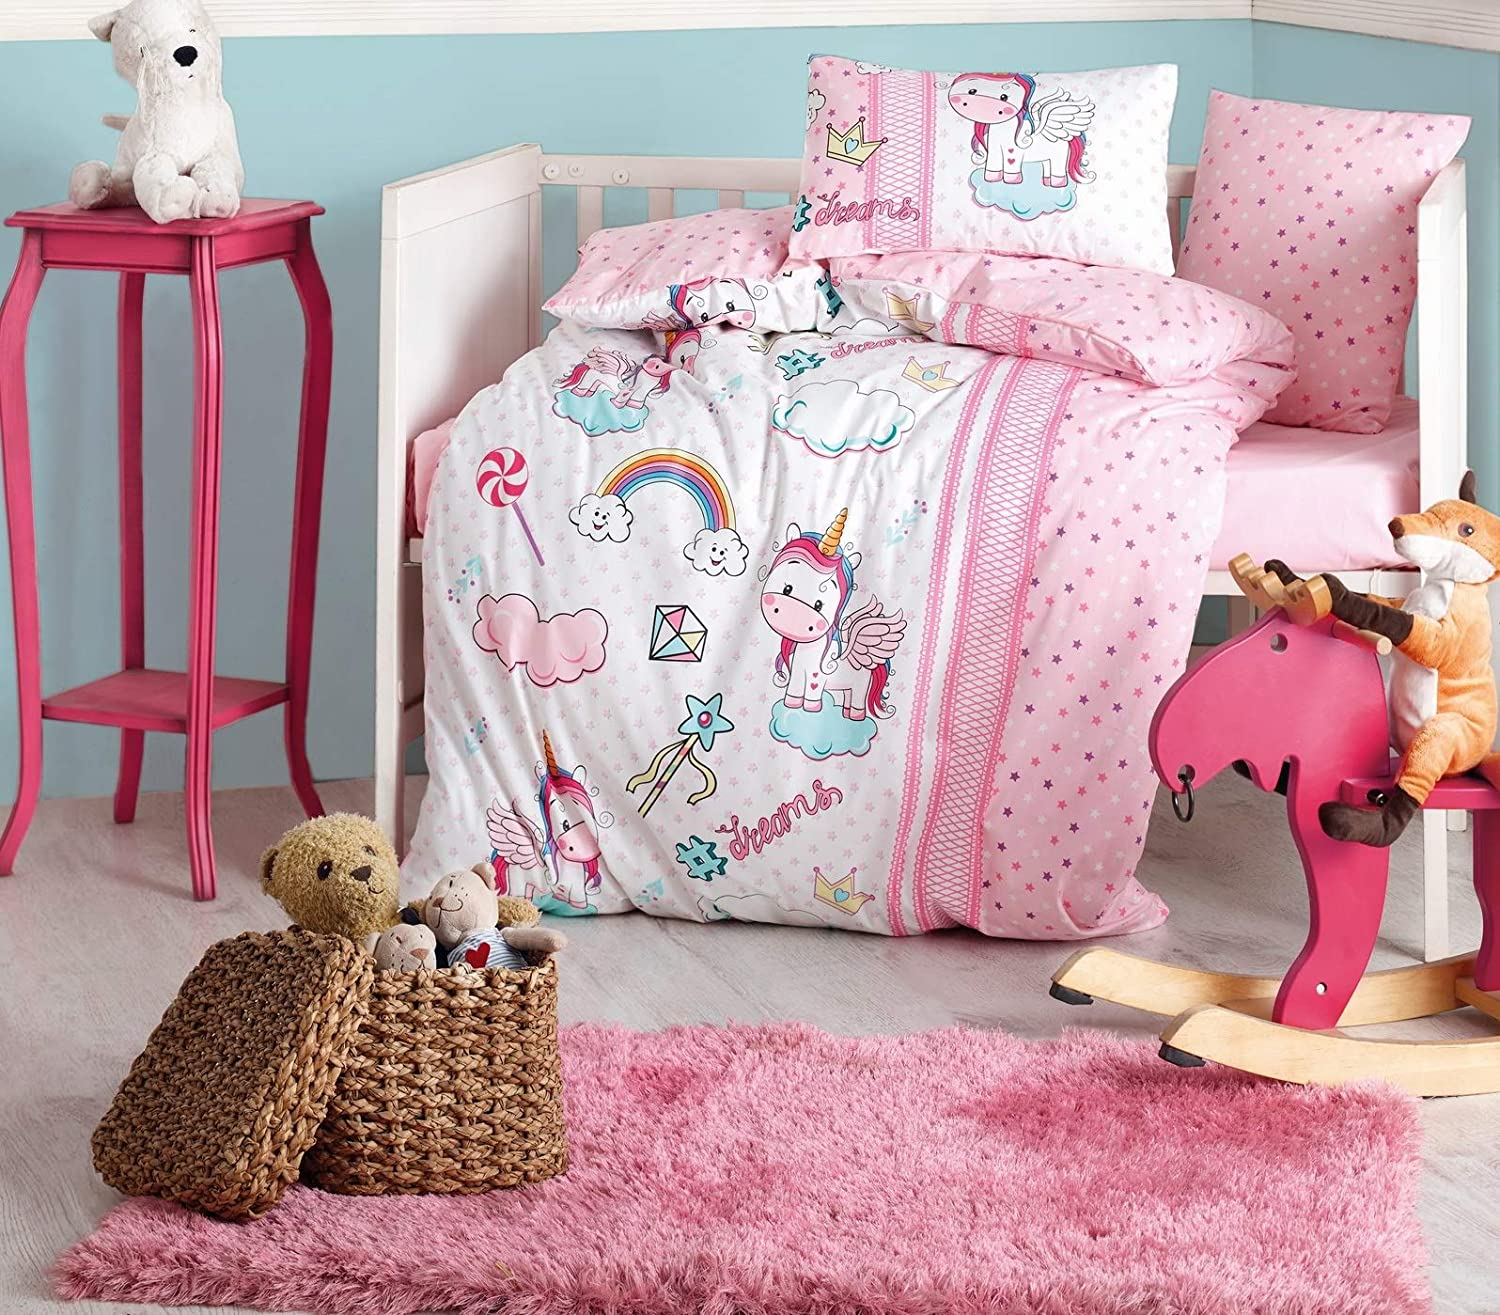 100% Cotton Unicorn Themed Nursery Baby Bedding Set, Toddlers Crib Bedding for Baby Girls, Duvet Cover Set with Comforter, Pink, 5 Pieces 810sZs2rGNL._SL1500_